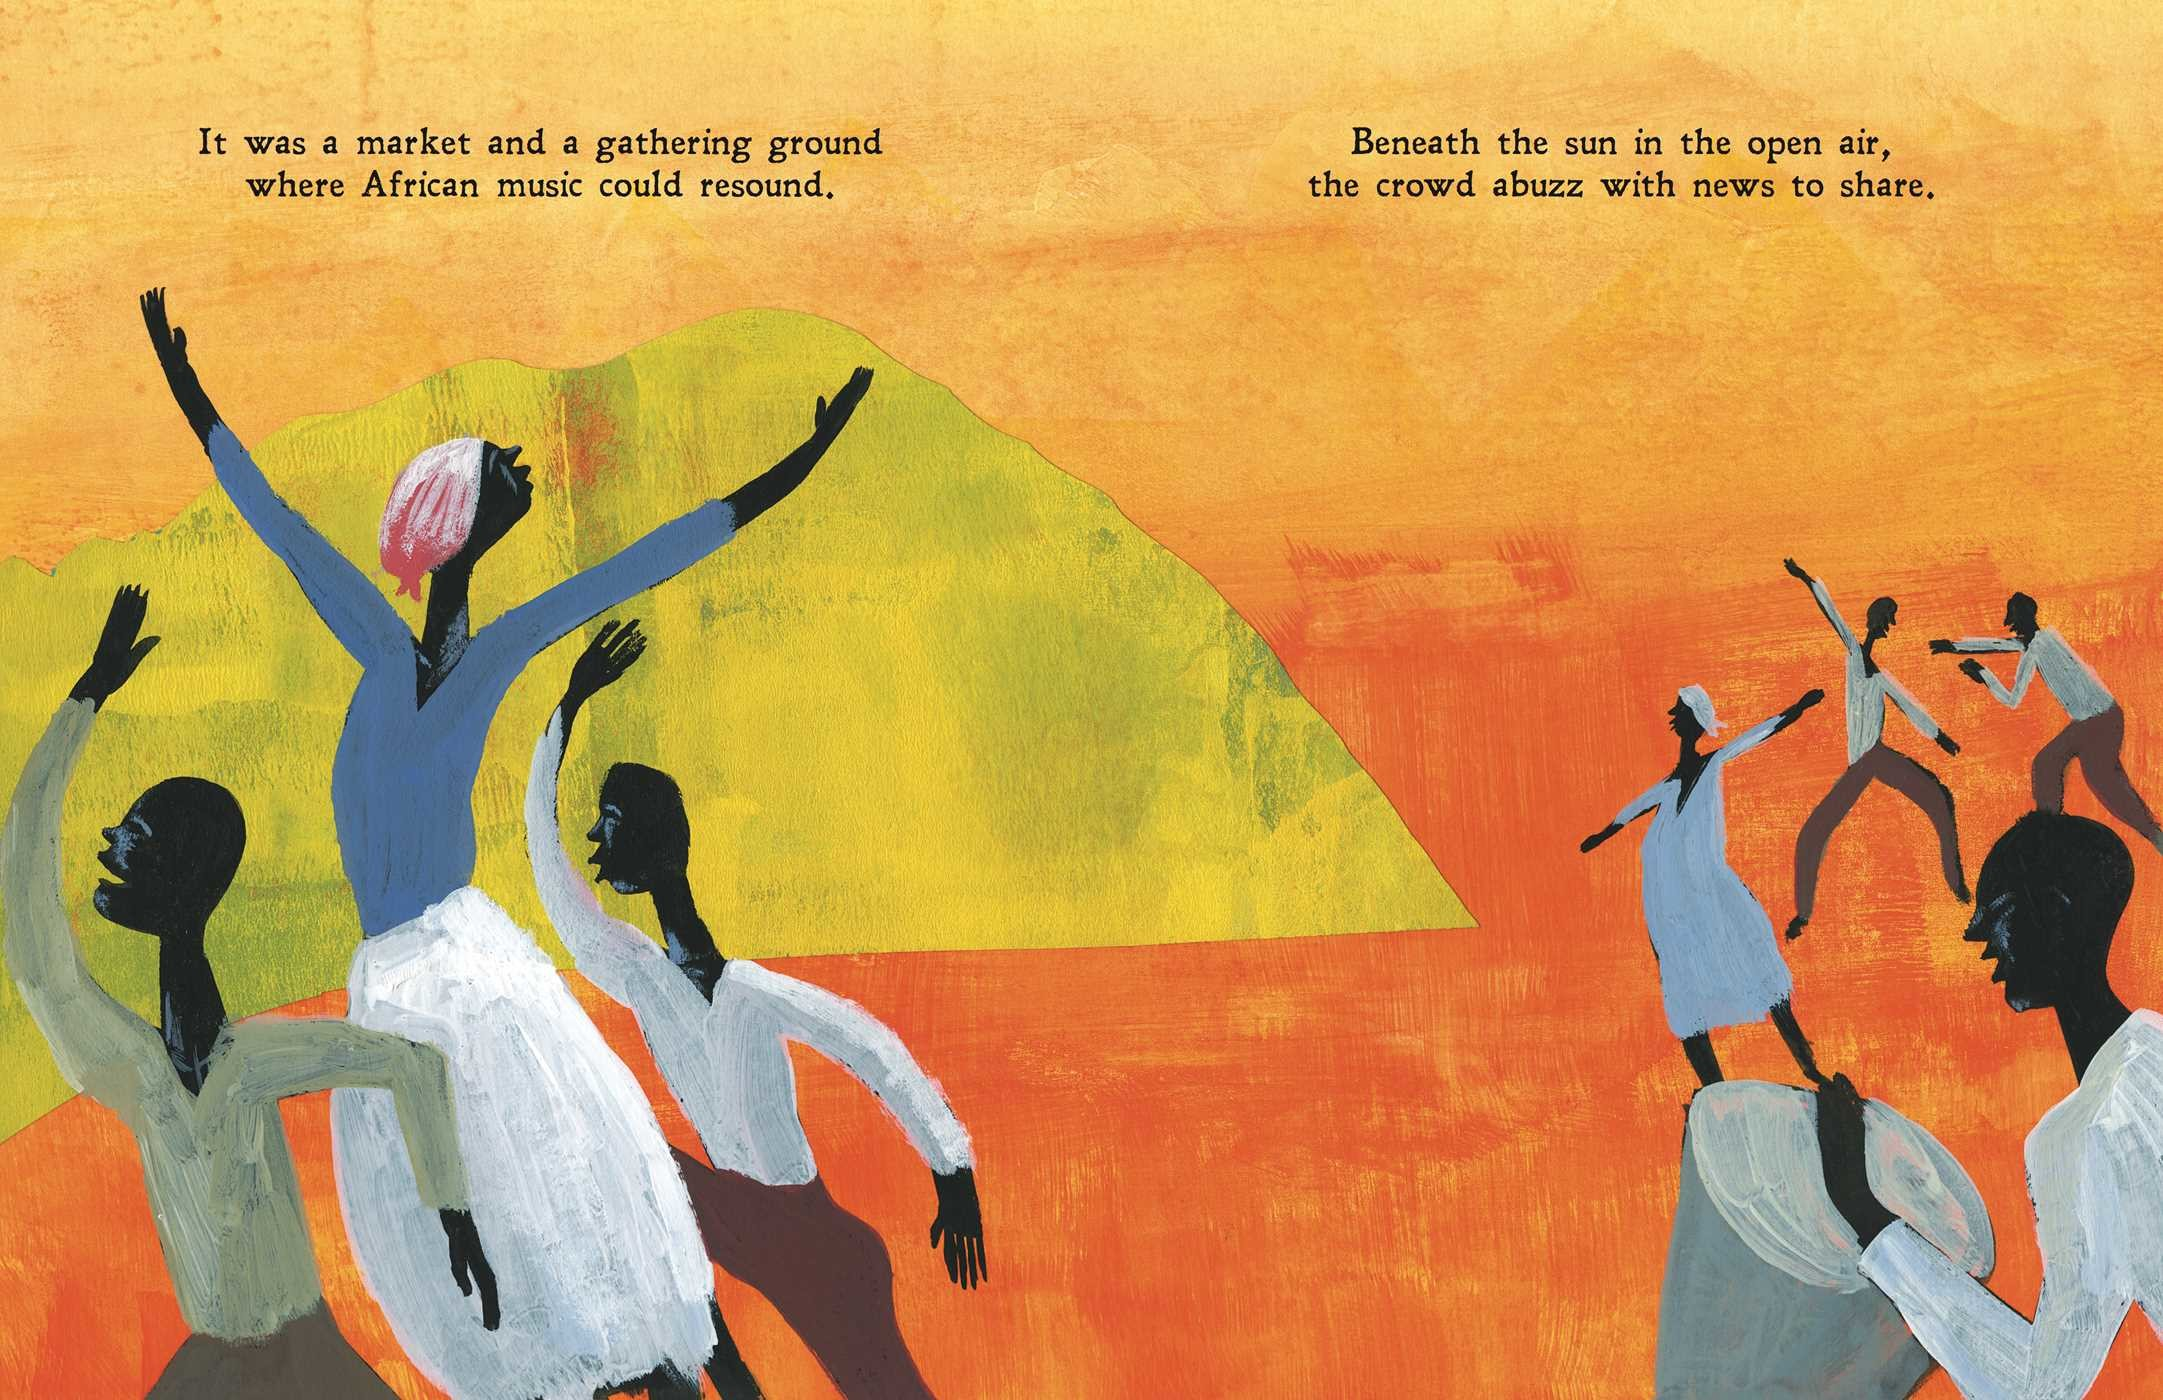 celebrate-picture-books-picture-book-review-freedom-in-congo-square-music-resounded